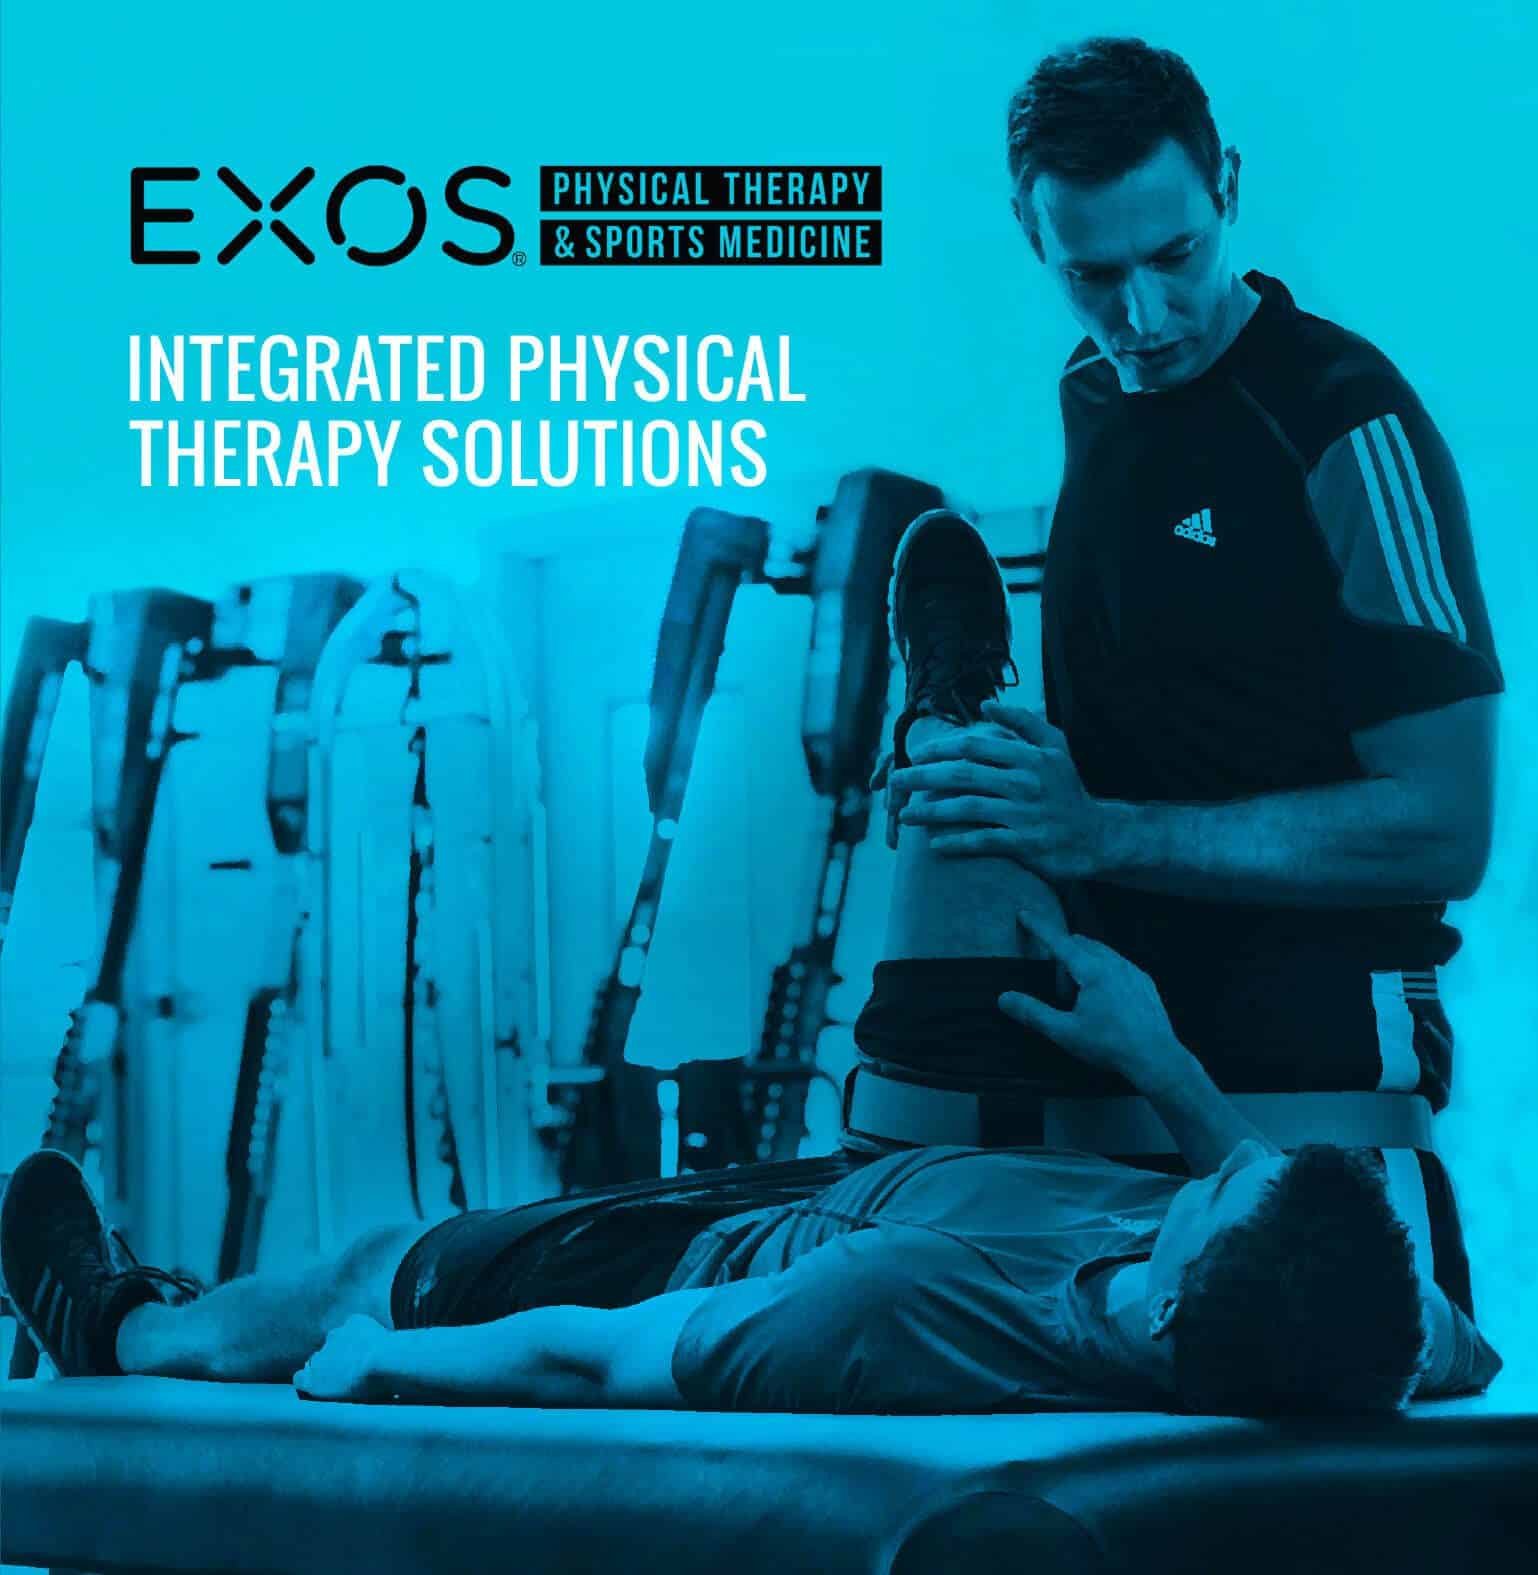 Now At Our Tampa Office – Exos Physicial Therapy